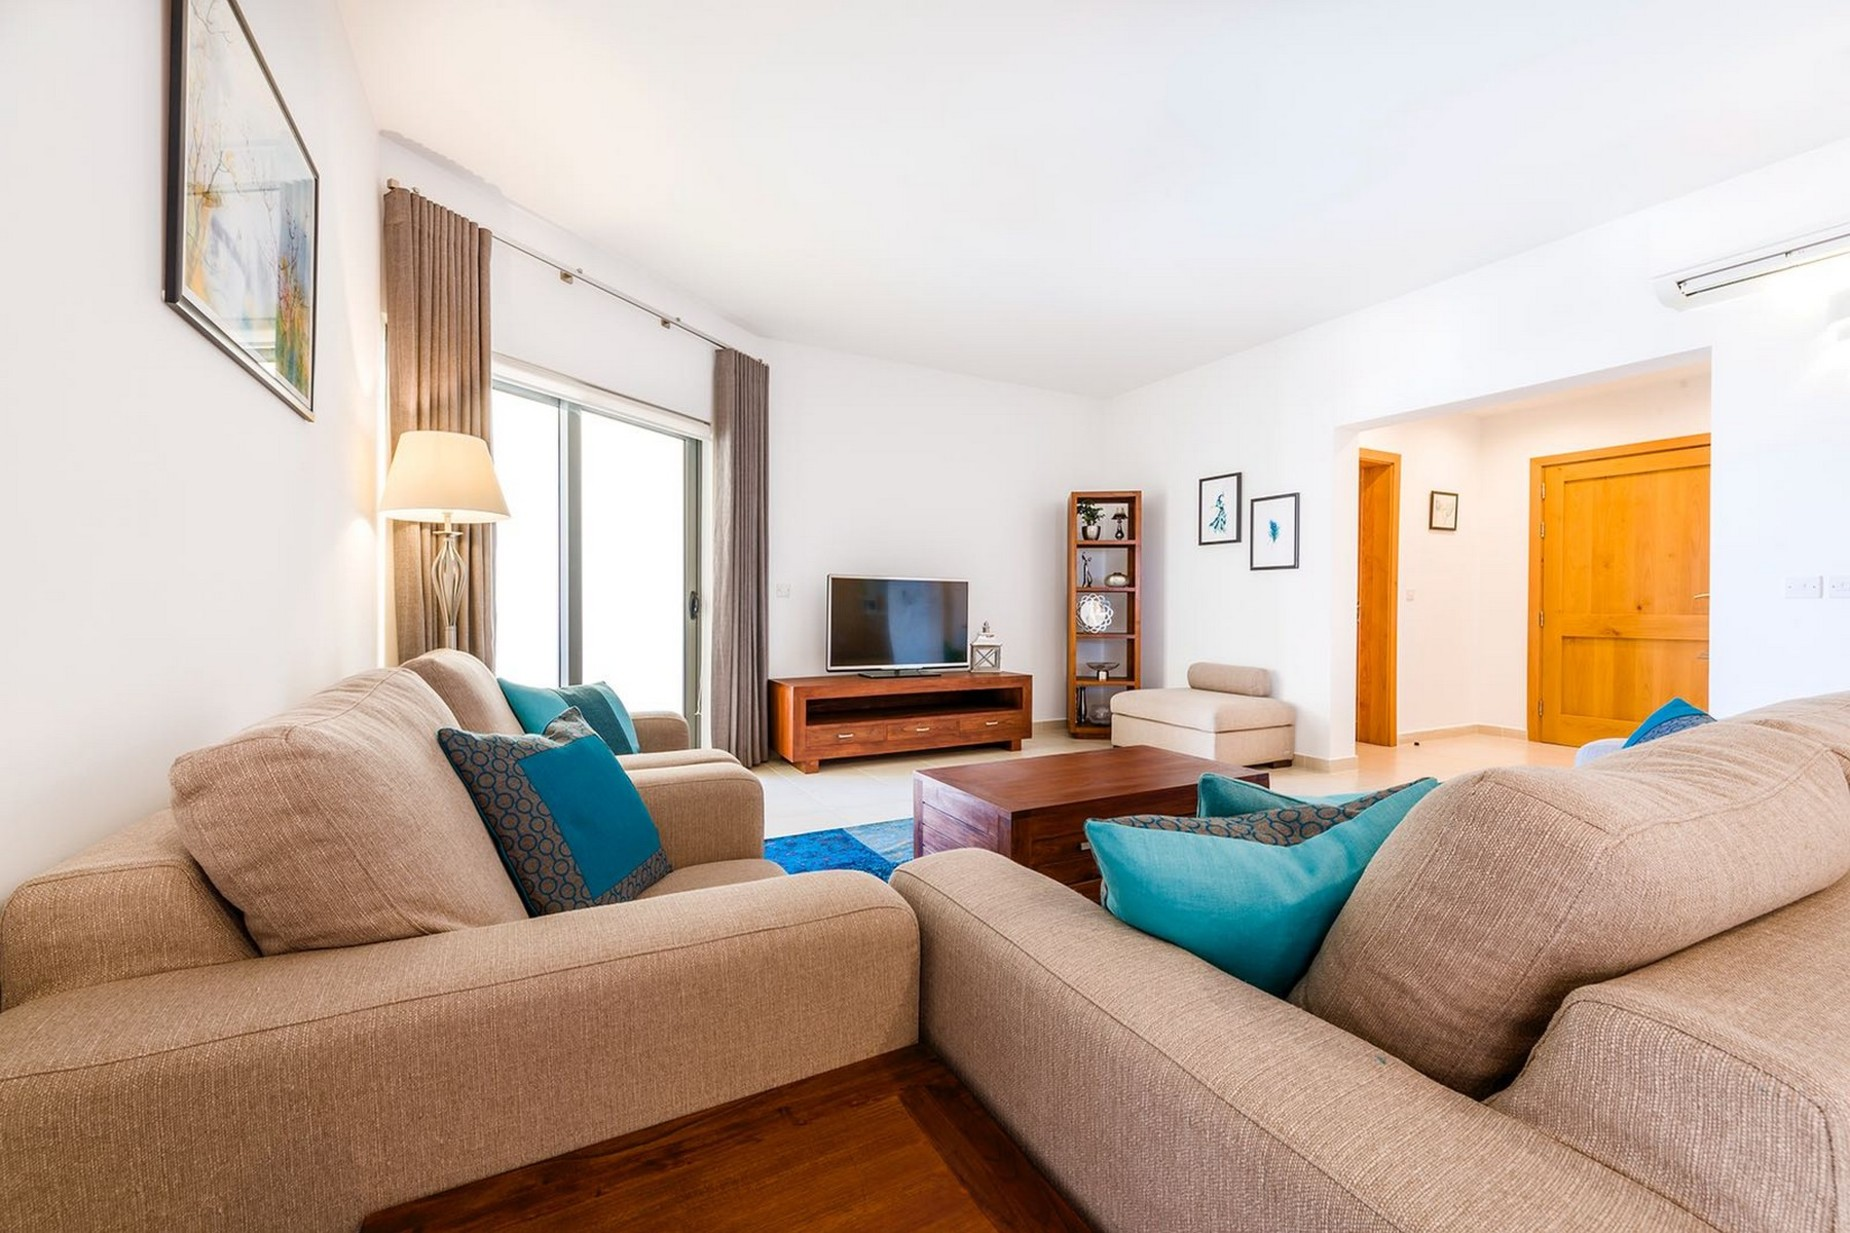 2 bed Apartment For Rent in Mellieha, Mellieha - thumb 3